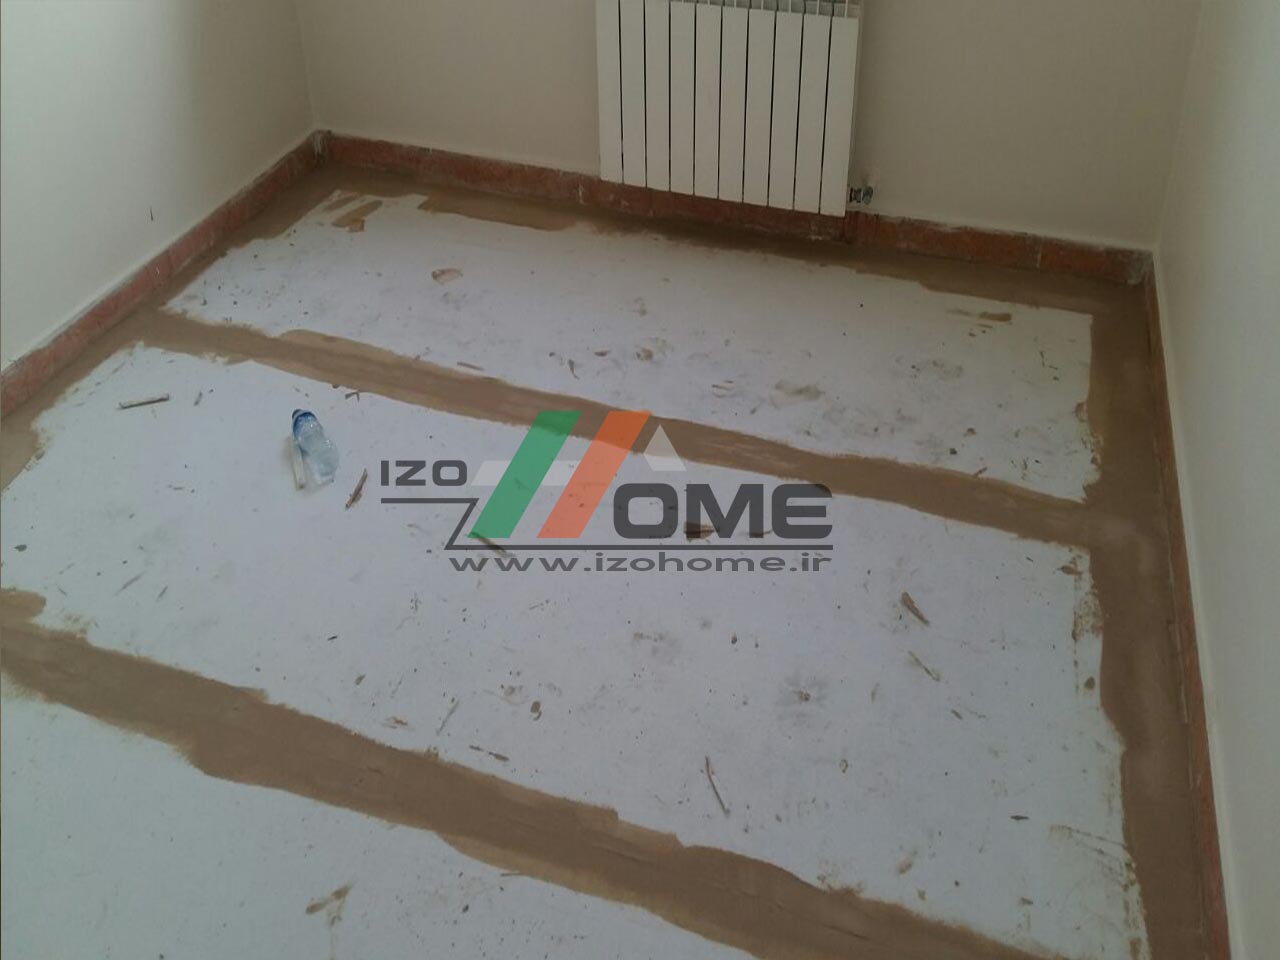 izohome101 - Sound insulation for the floor